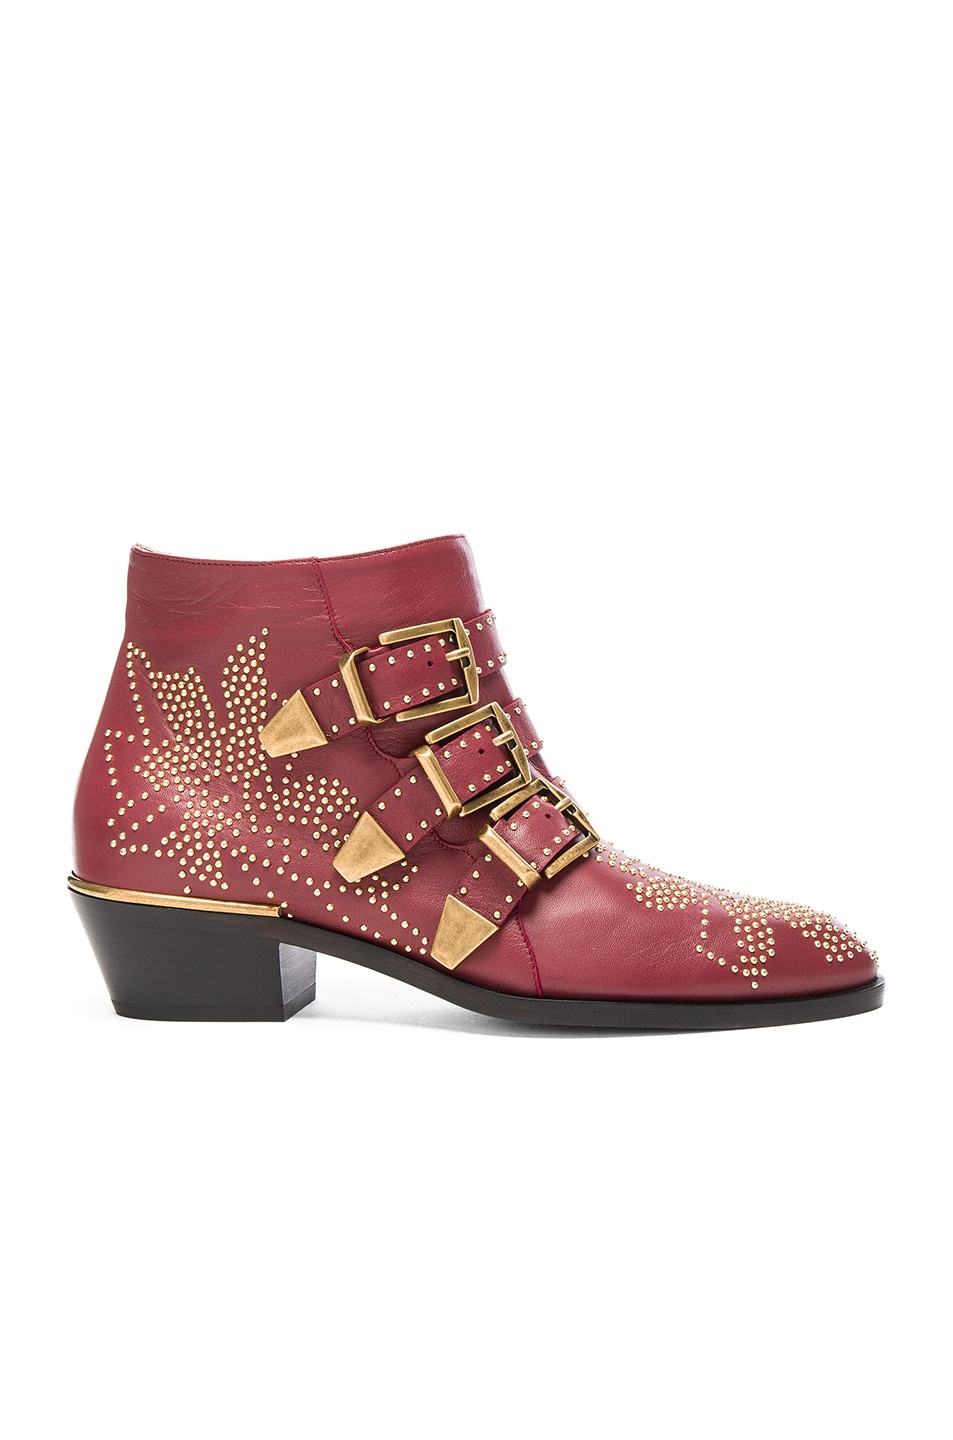 Image 1 of Chloe Susanna Leather Studded Booties in Cherry Syrup